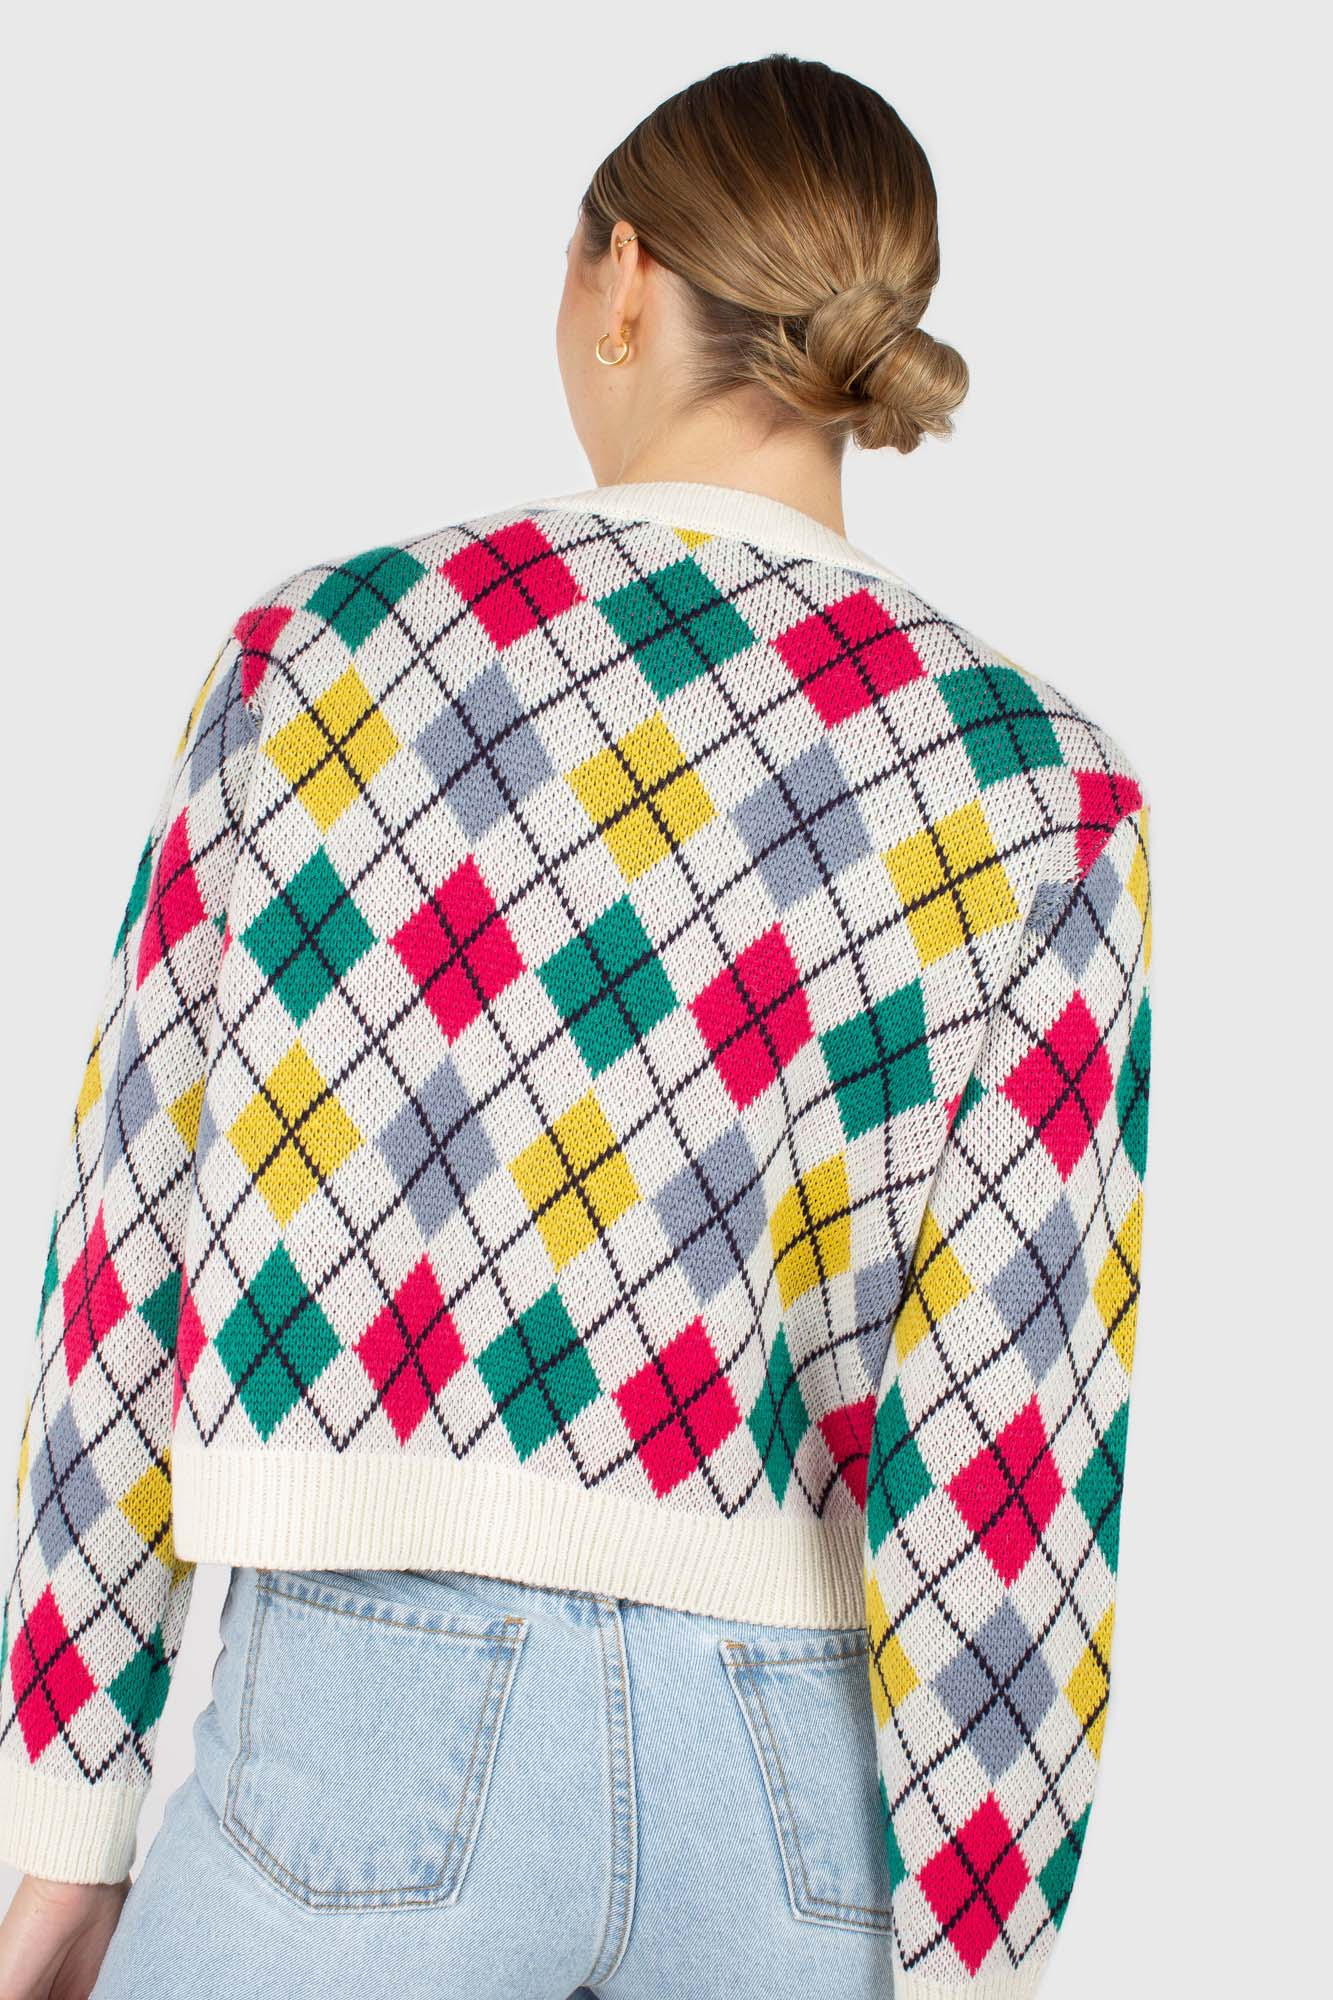 Ivory multi colored argyle cardigan3